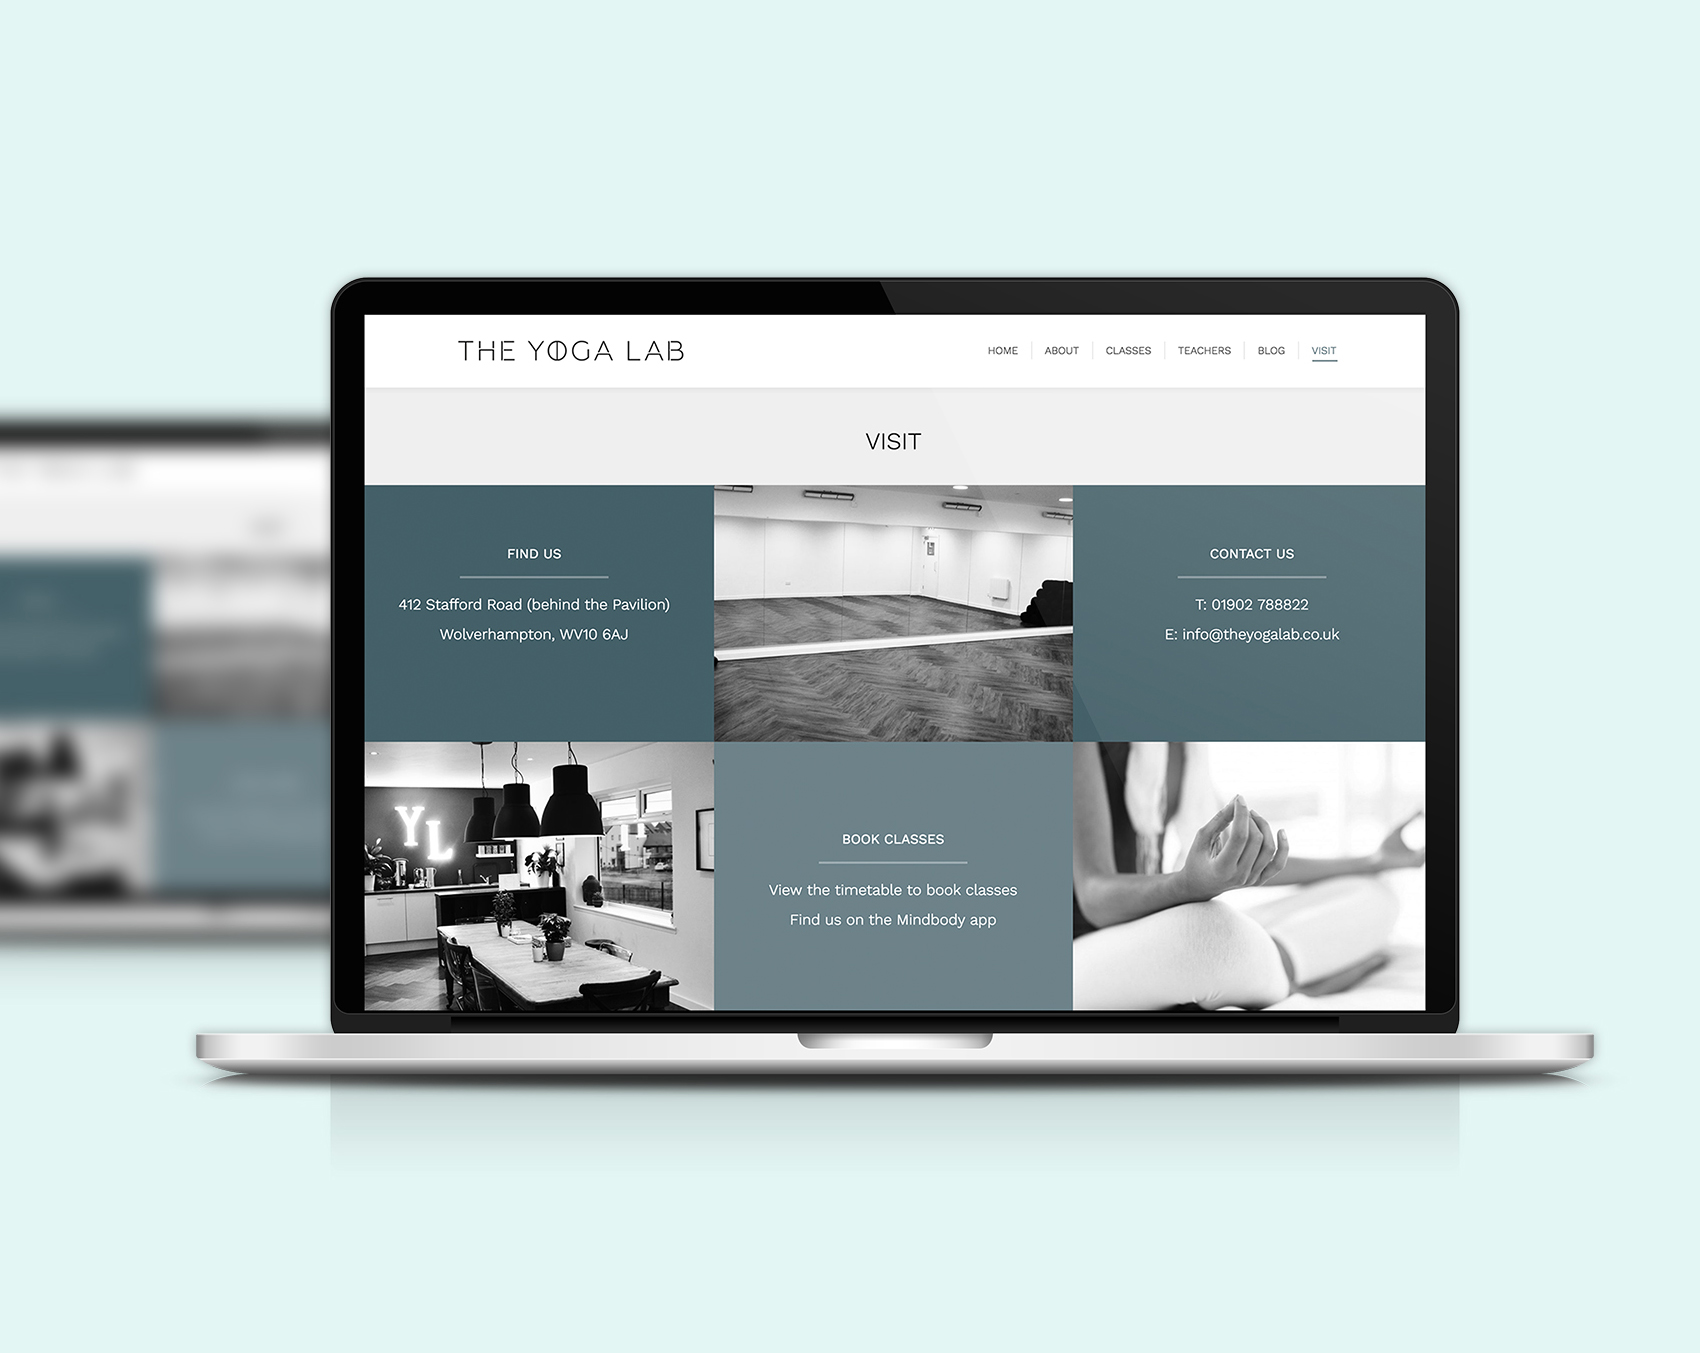 The Yoga Lab website